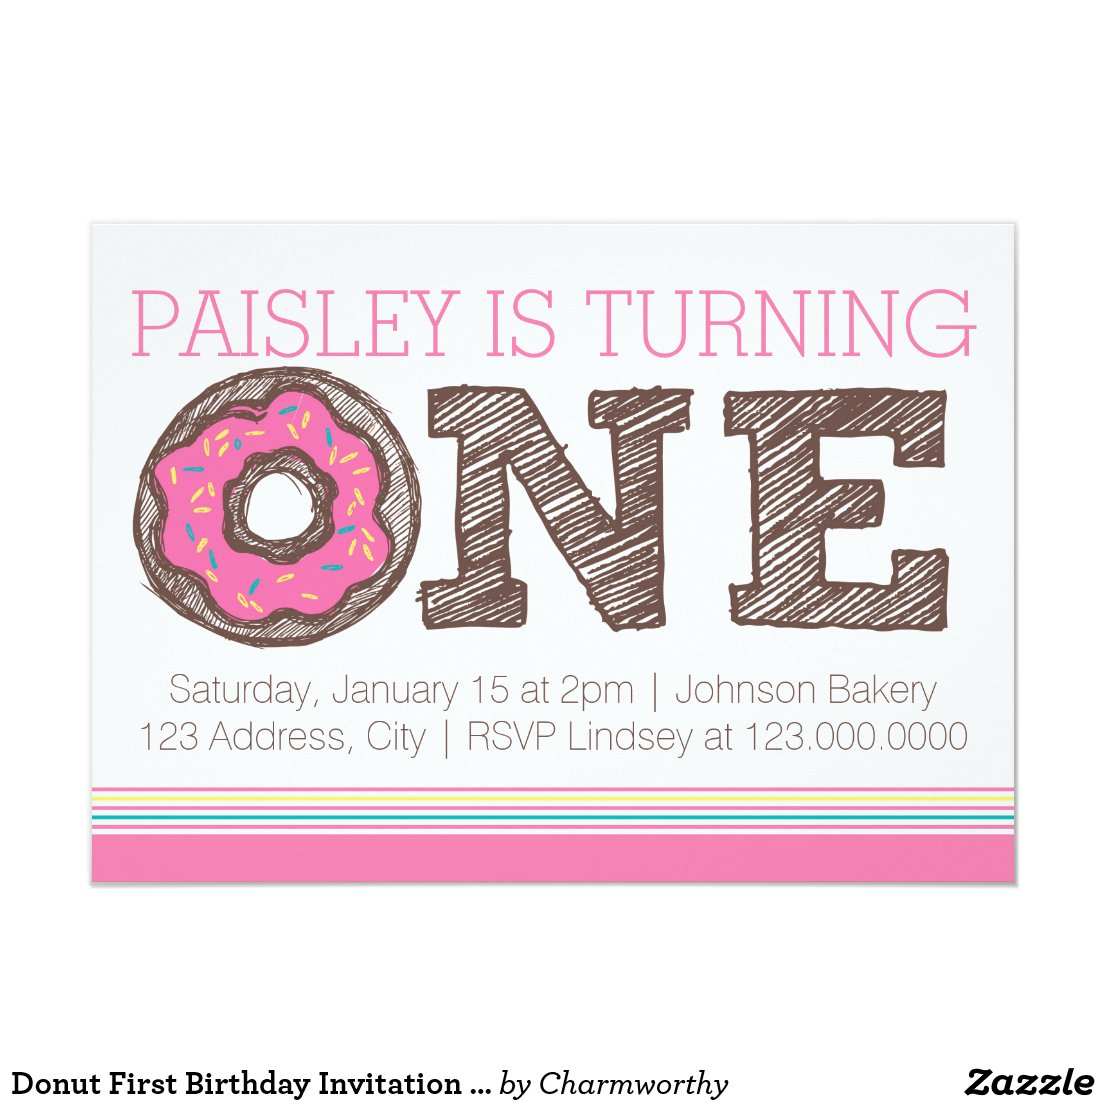 Donut First Birthday Invitation - Pink